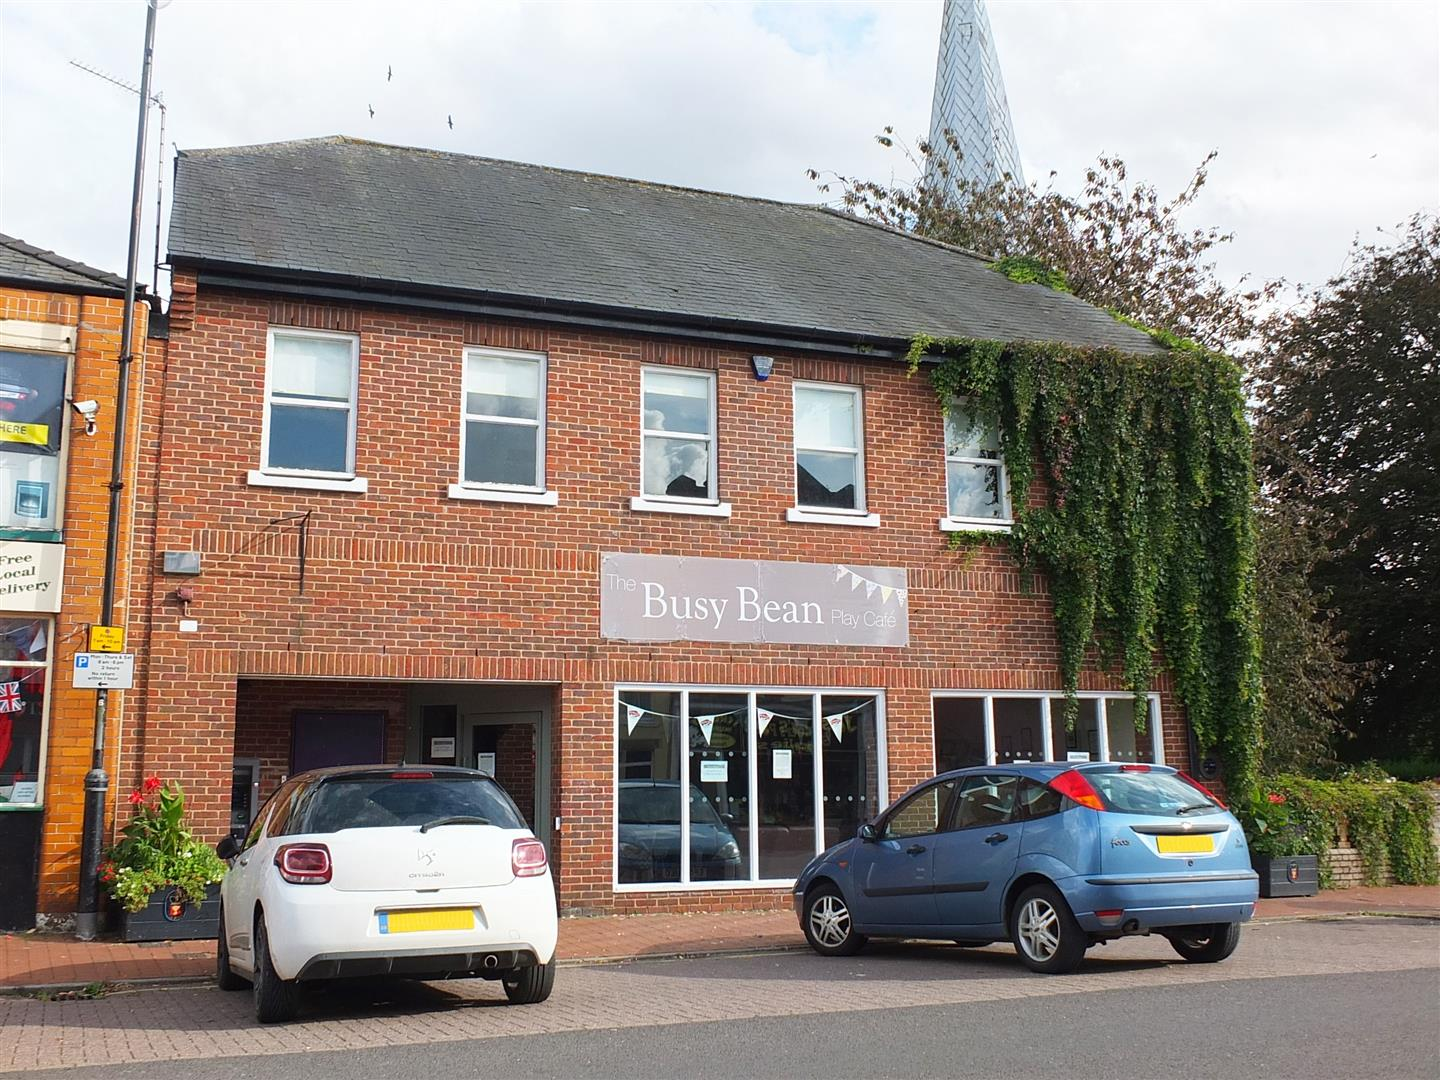 Commercial property for sale in Spalding, PE12 9JF, PE12